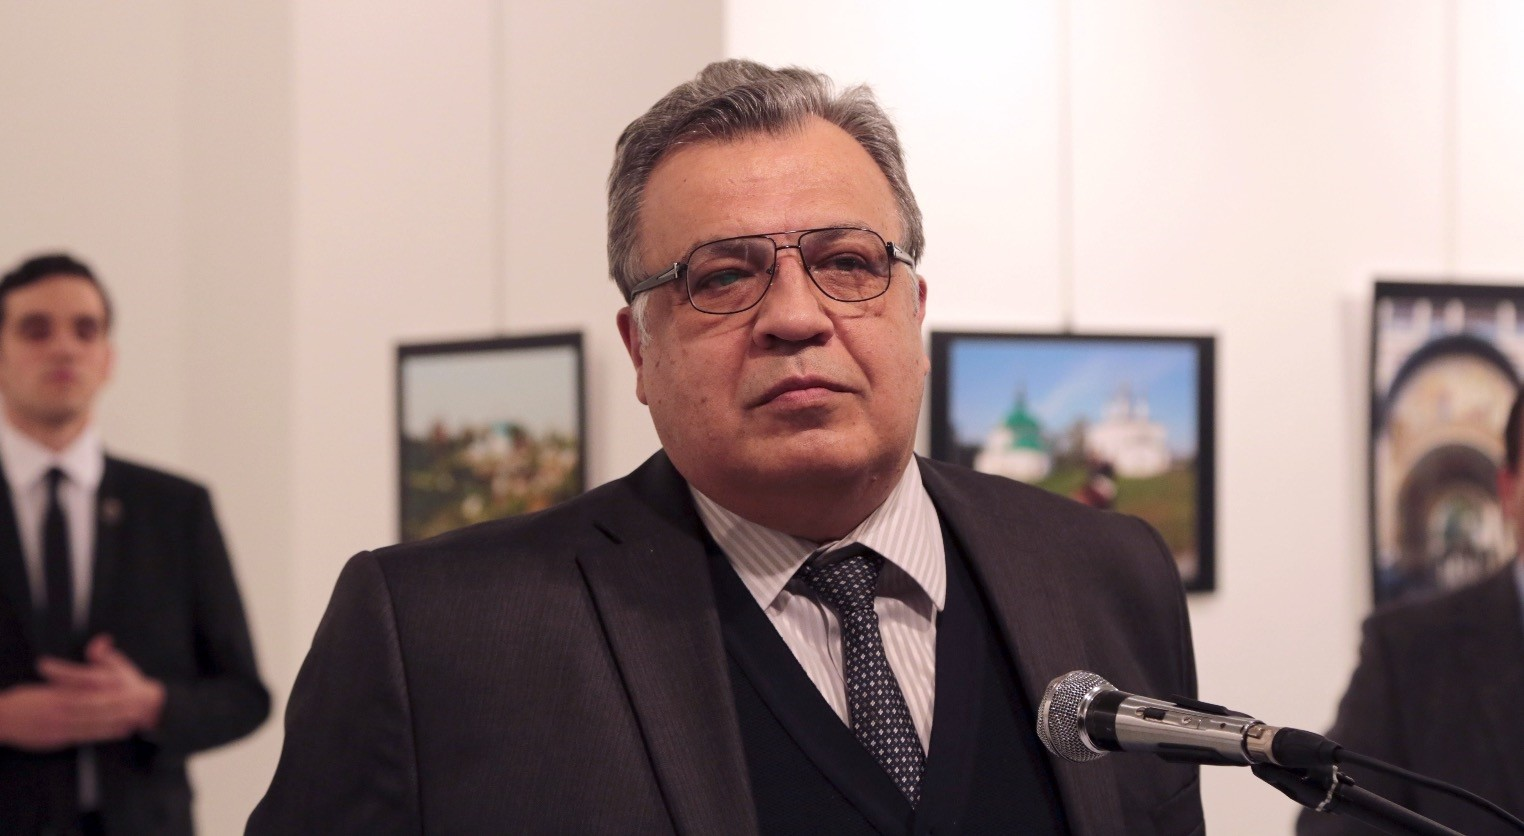 The Russian Ambassador to Turkey Andrei Karlov speaks at a gallery in Ankara Dec. 19, 2016. The gunman is seen in the back left of the photograph.